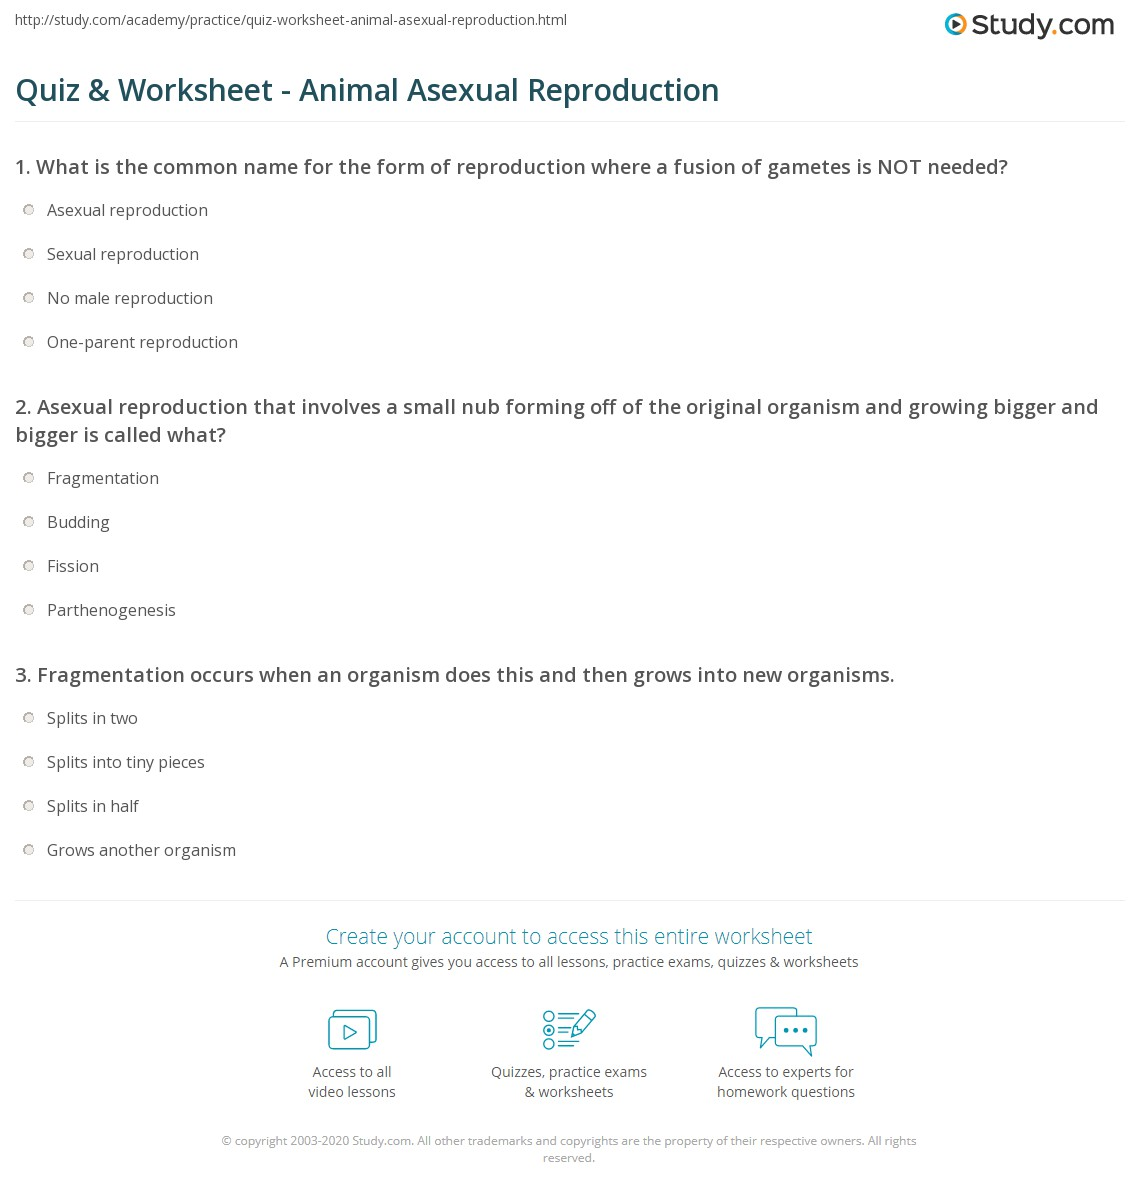 List all types of asexual reproduction quiz